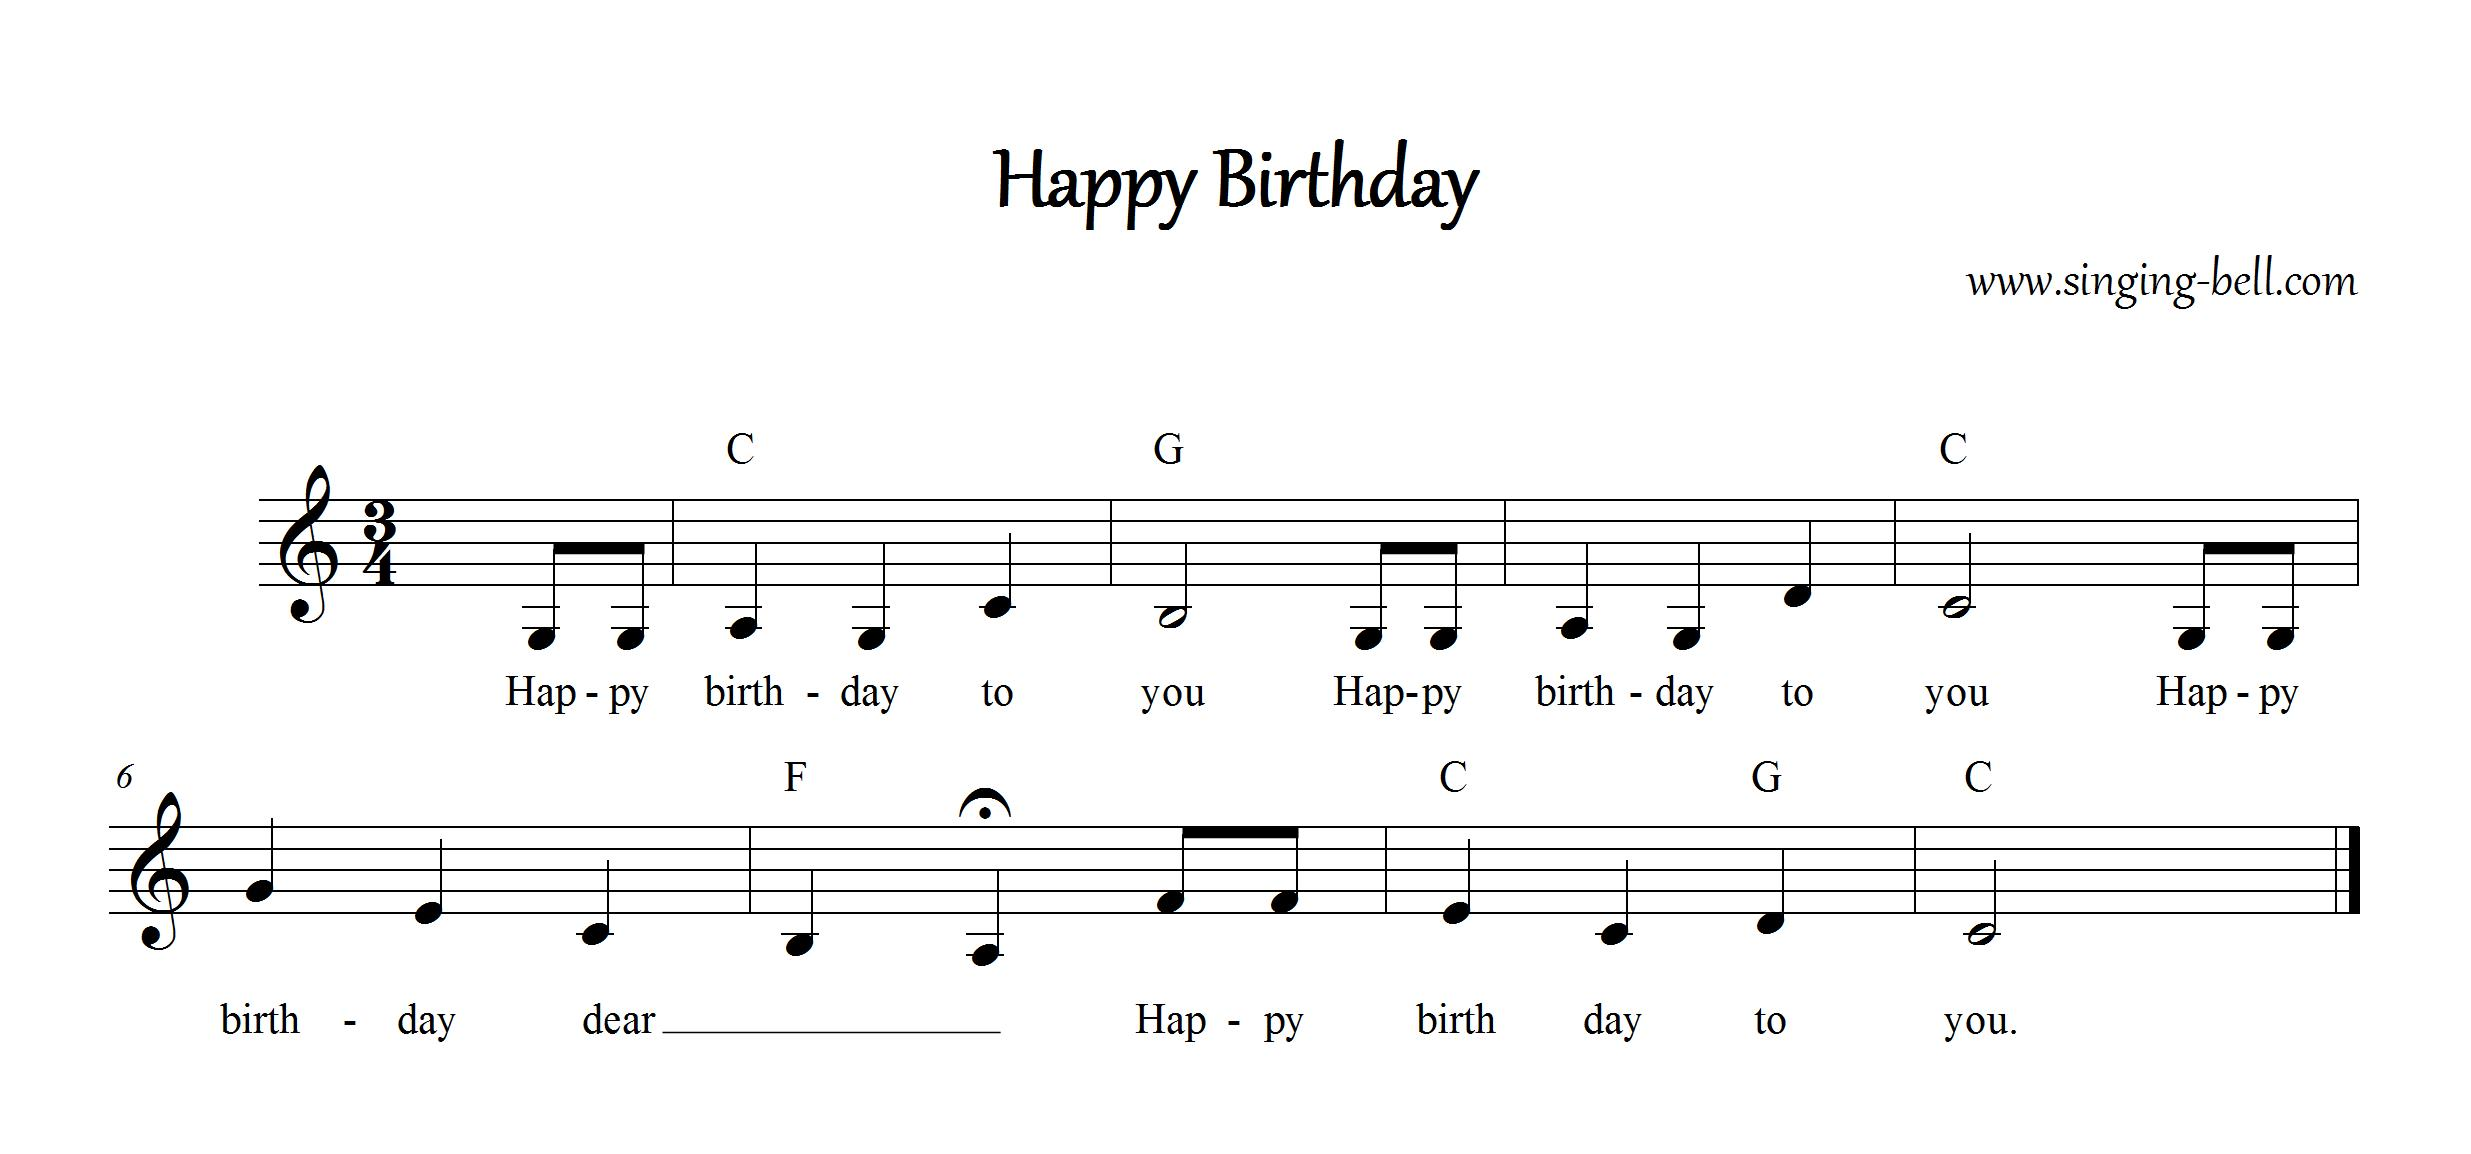 happy birthday lyrics and chords ; Happy-Birthday_C_Singing-Bell